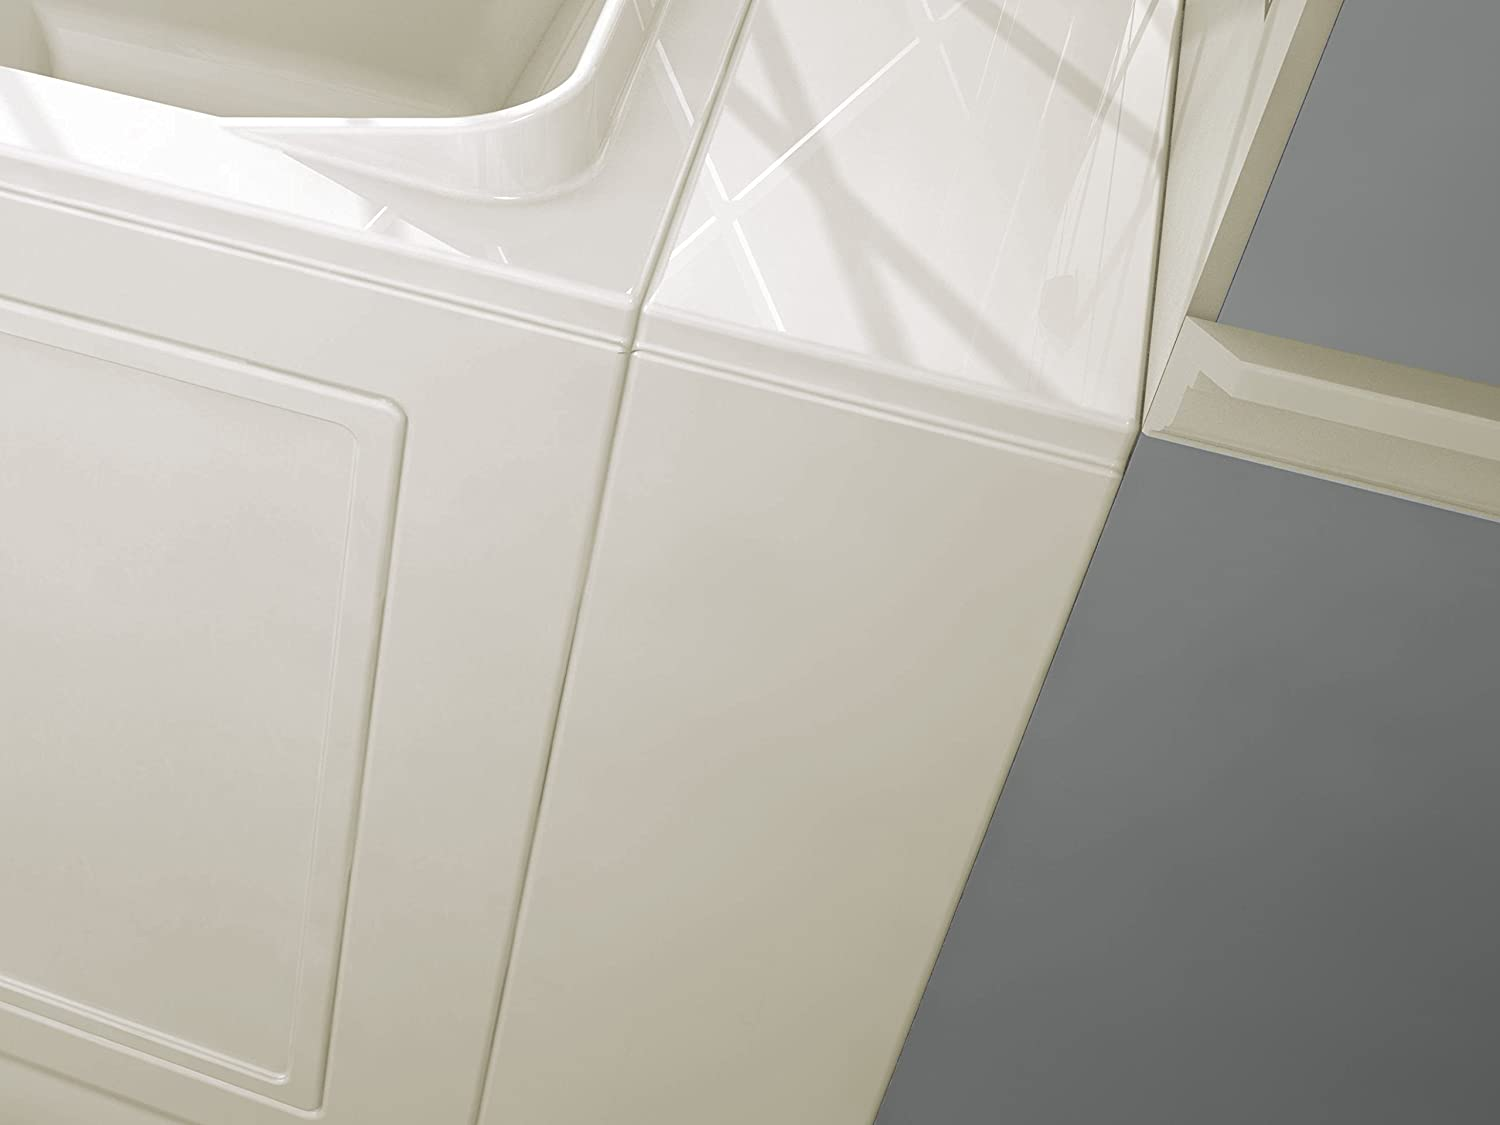 American Standard 30x52 Right Hand Outward Opening Door Value Series Walk in Combo Whirlpool and  Air Spa in Linen